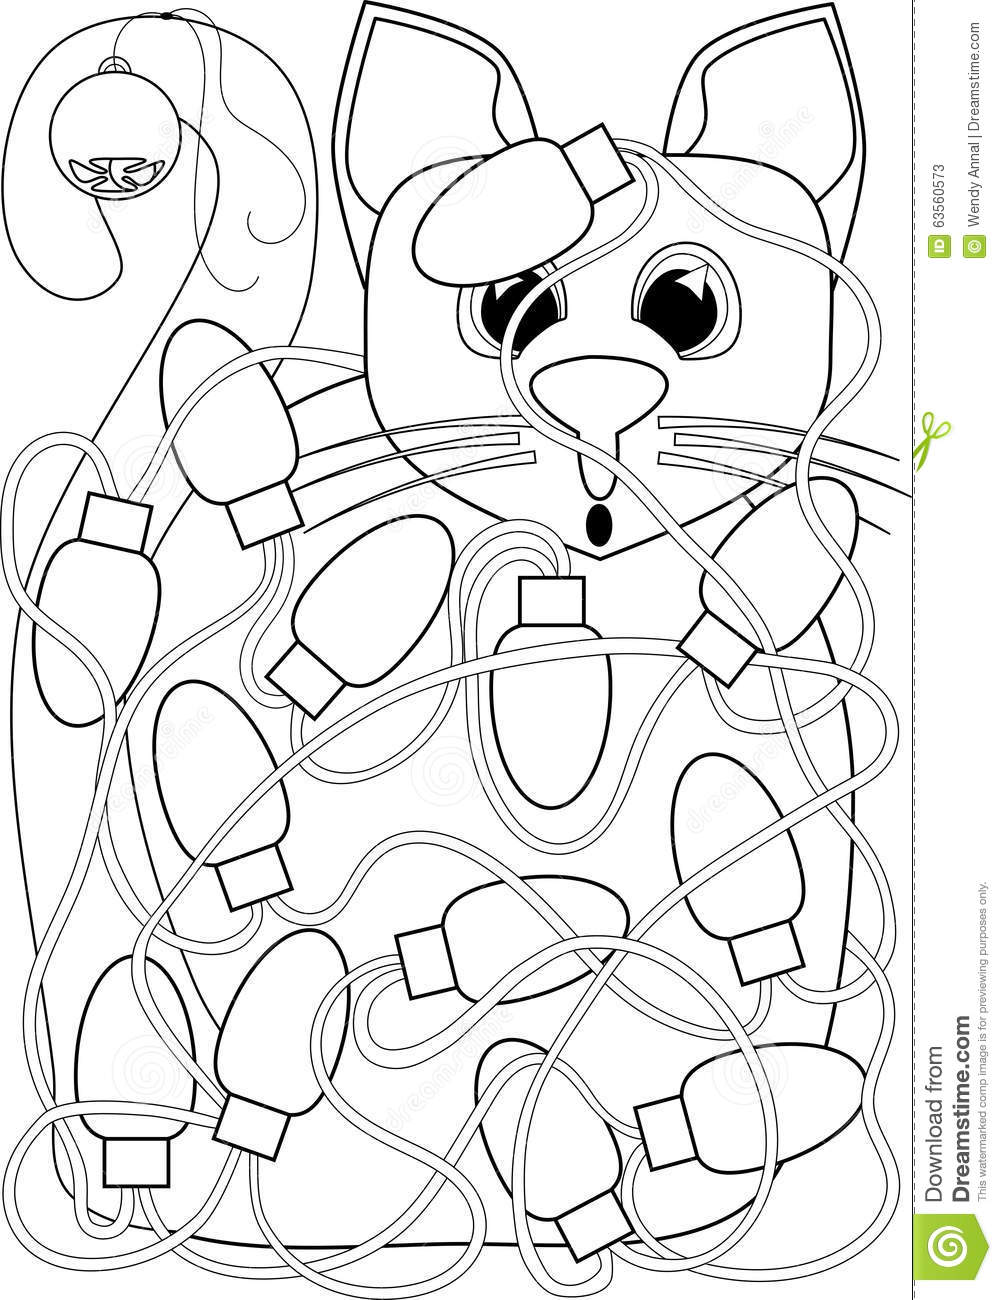 1002x1300 Direct Black Light Coloring Pages Christmas Lights Pattern Page